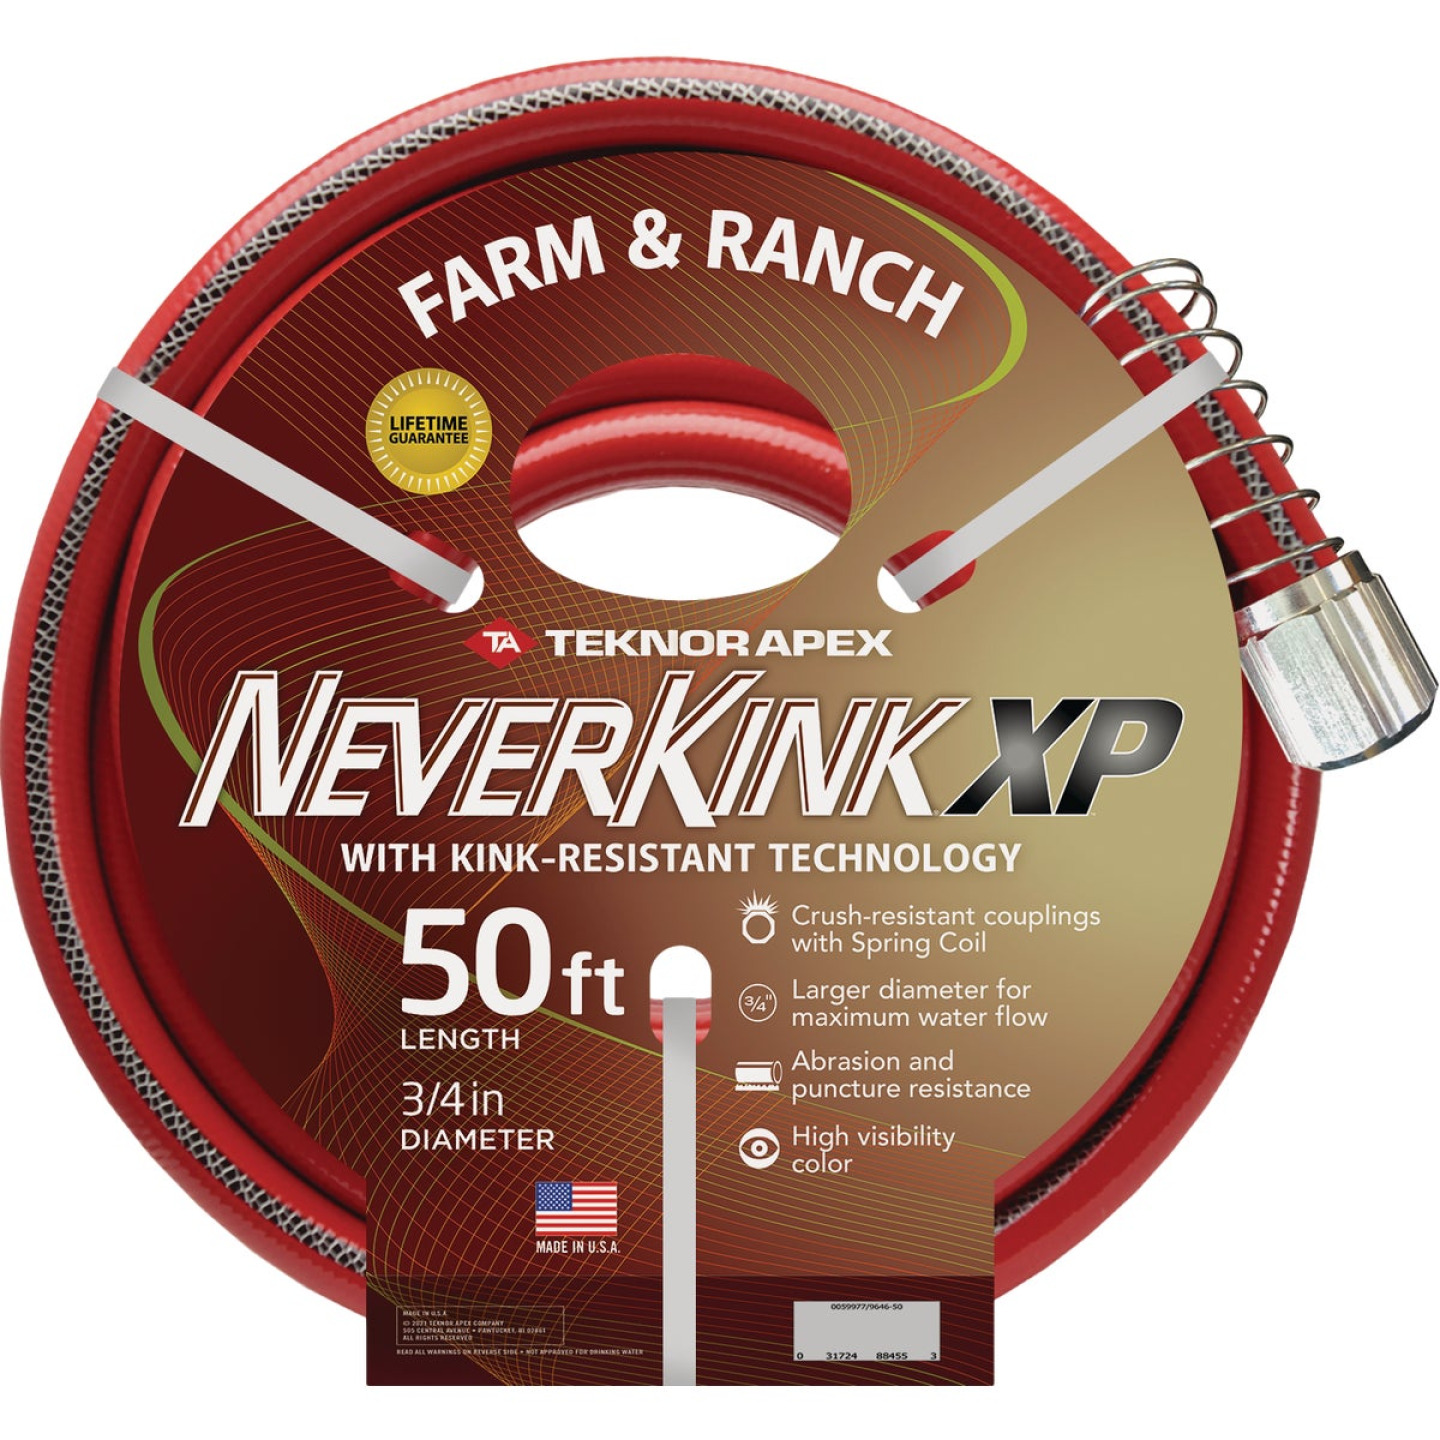 NeverKink XP 3/4 In. x 50 Ft. Farm & Ranch Hose Image 1